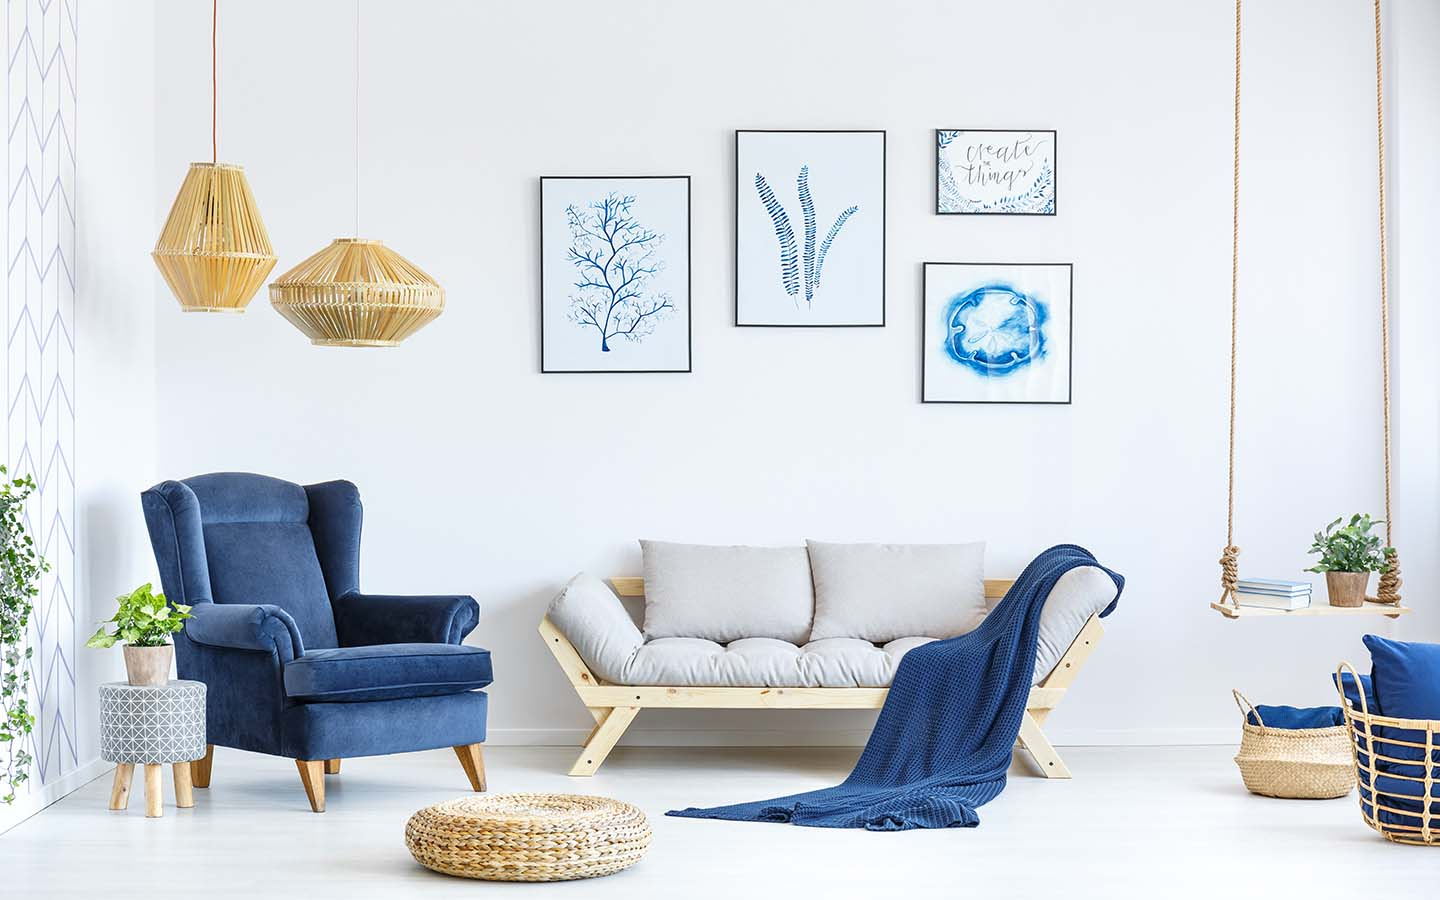 White and blue living room.